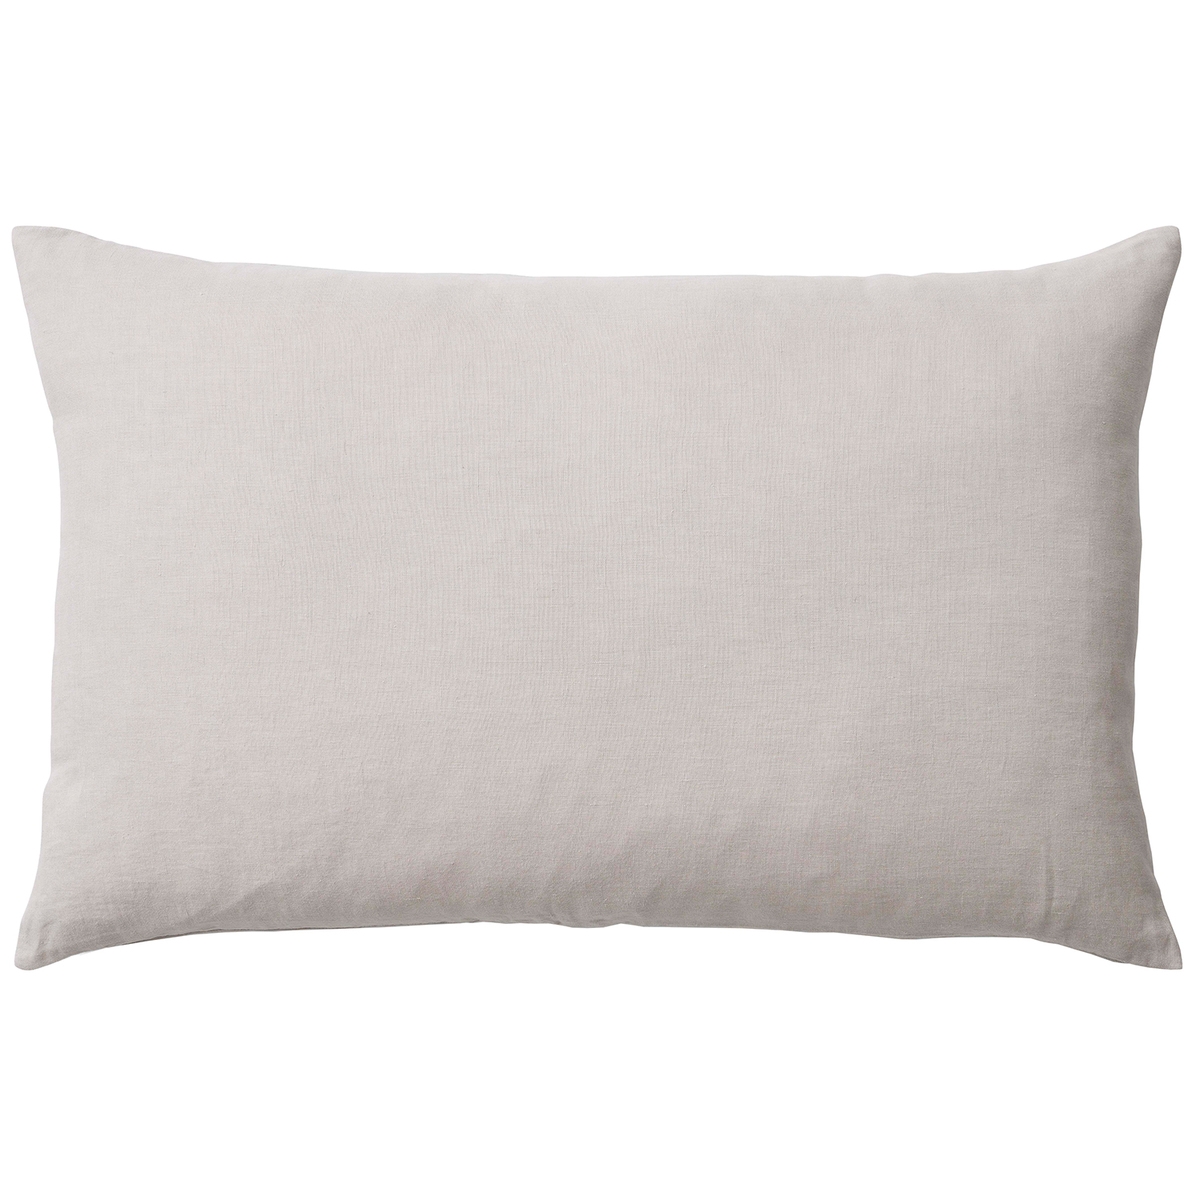 &Tradition Collect Linen SC30 cushion, 50 x 80 cm, cloud from &Tradition